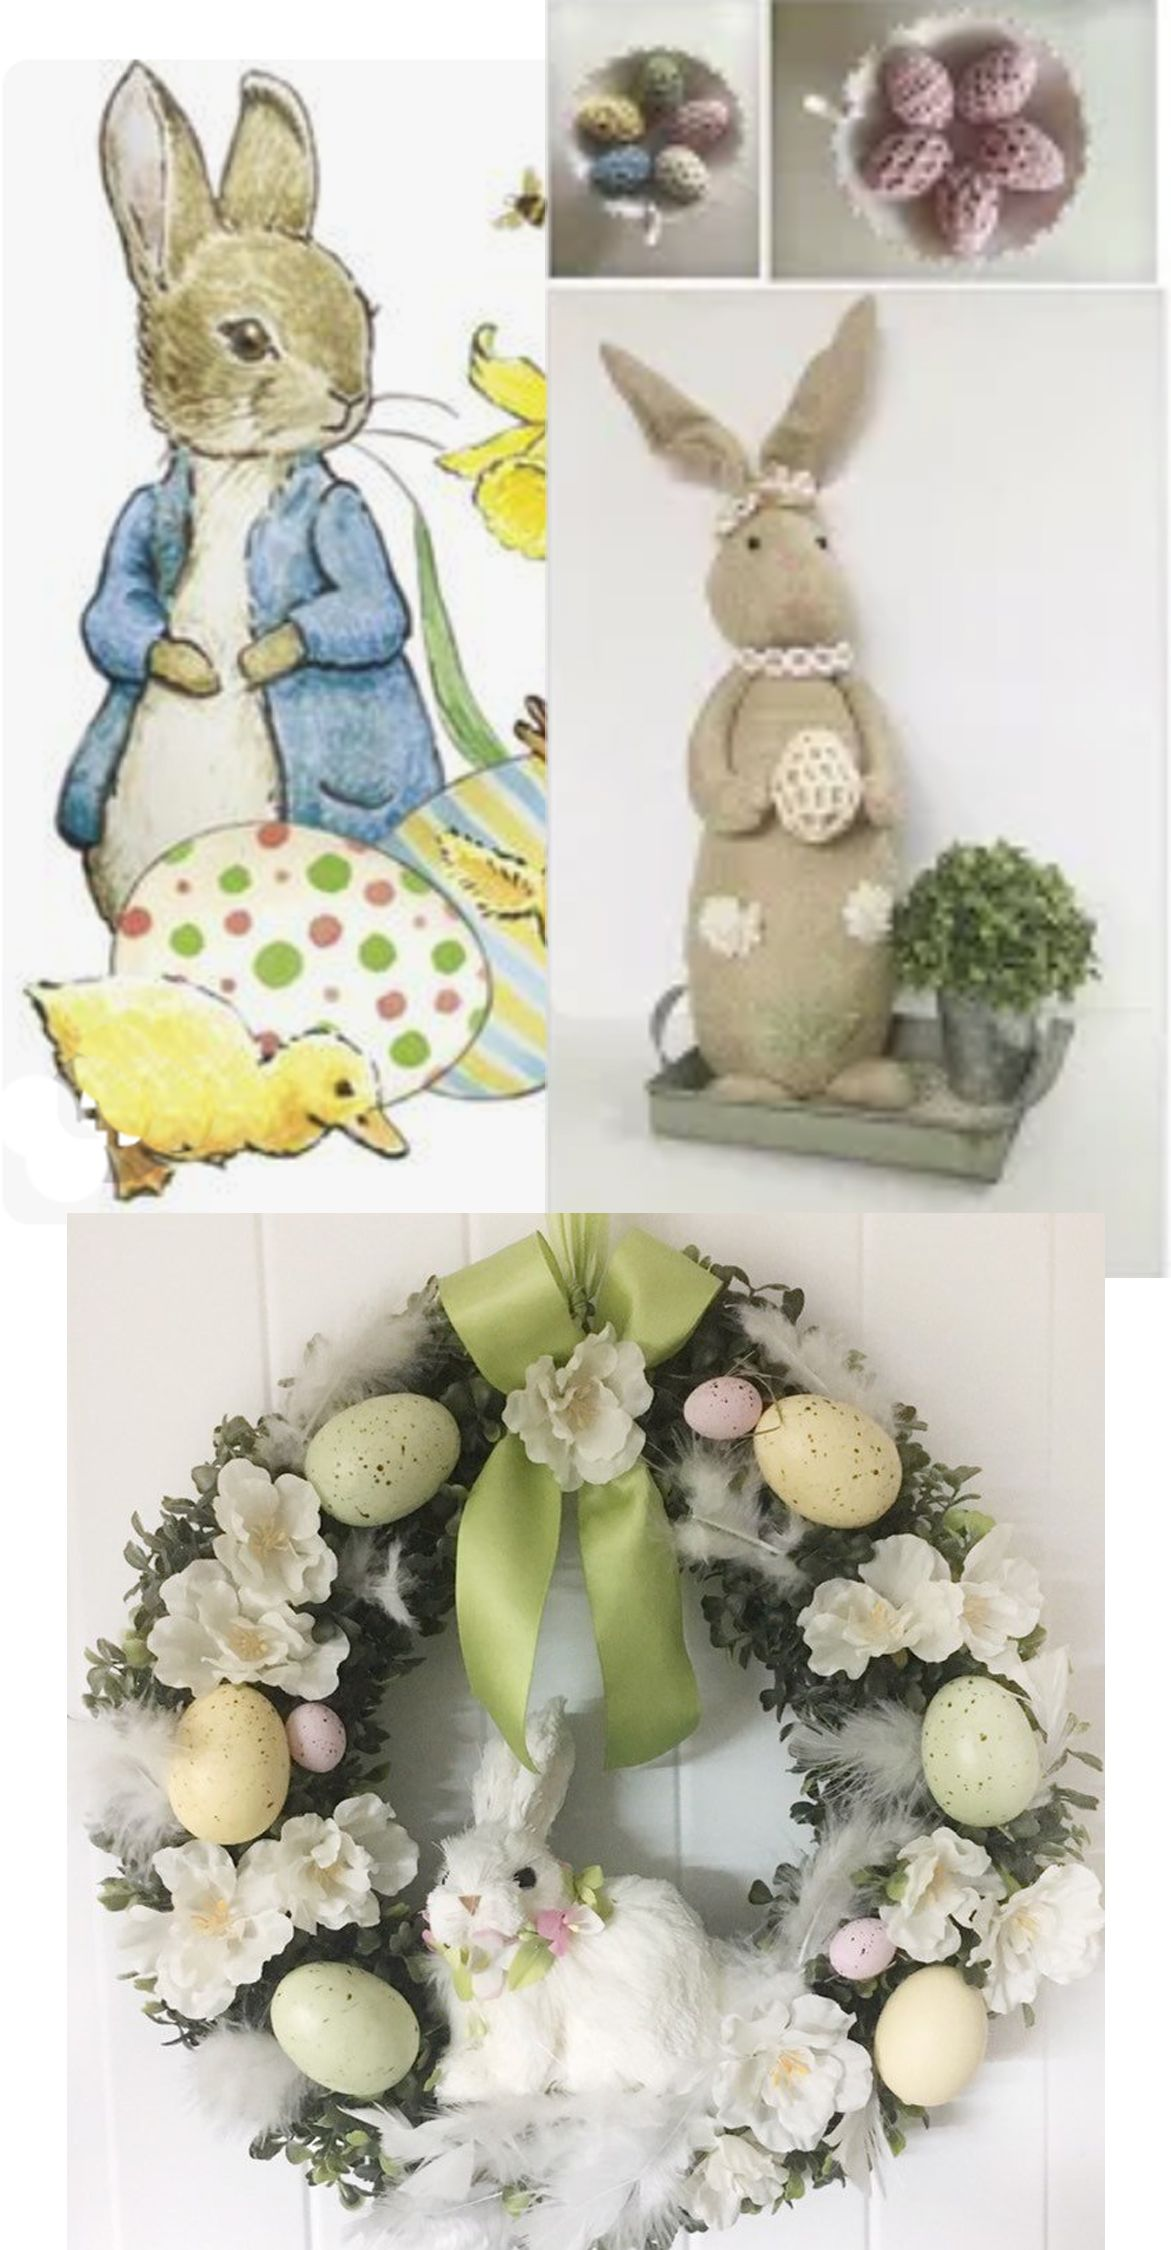 Find all sorts of Easter treats at this great Etsy shop